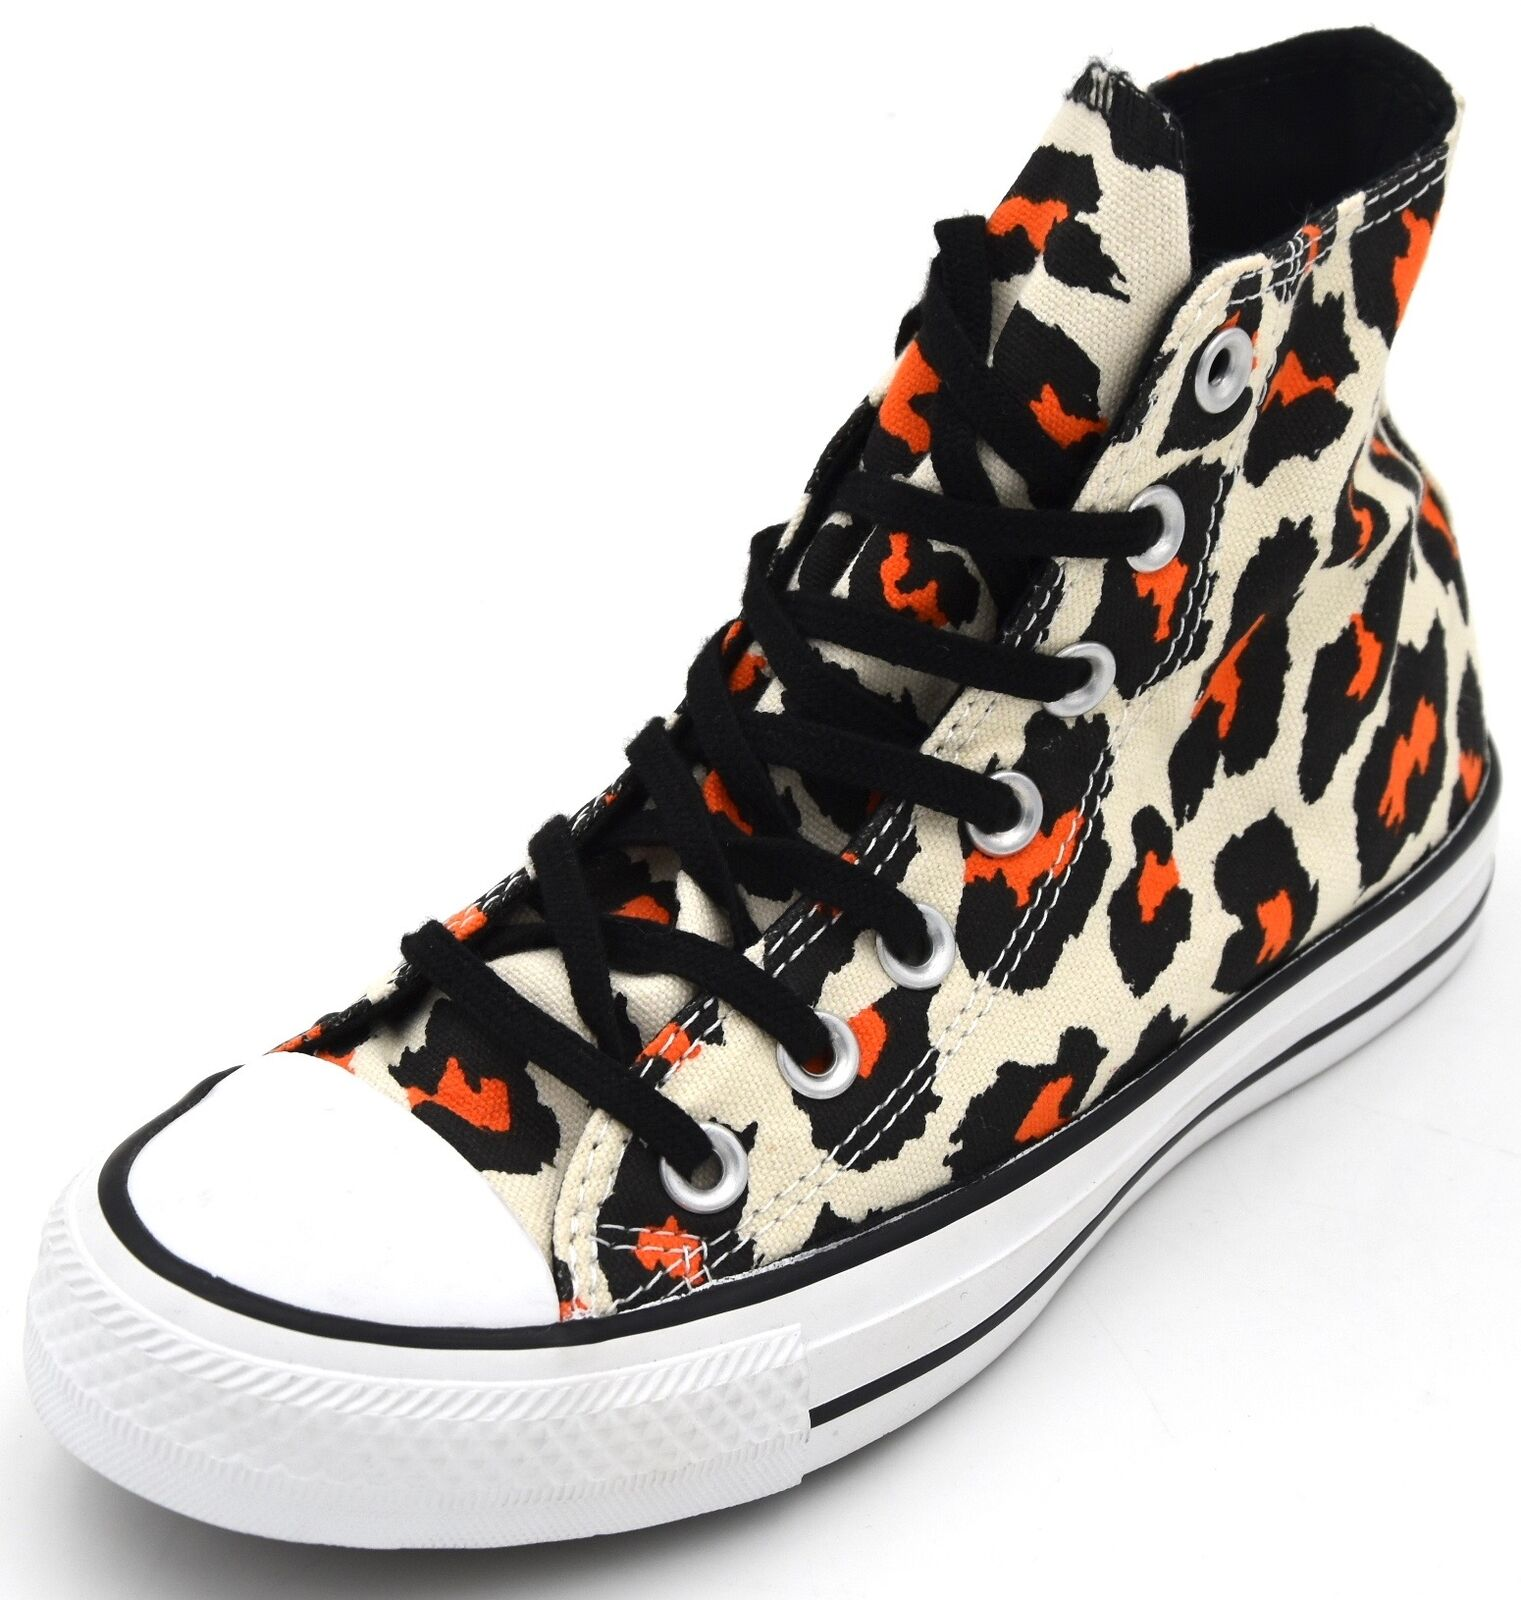 CONVERSE ALL STAR WOMAN SNEAKER SHOES CASUAL FREE TIME CODE 144309C HI GRAPHICS